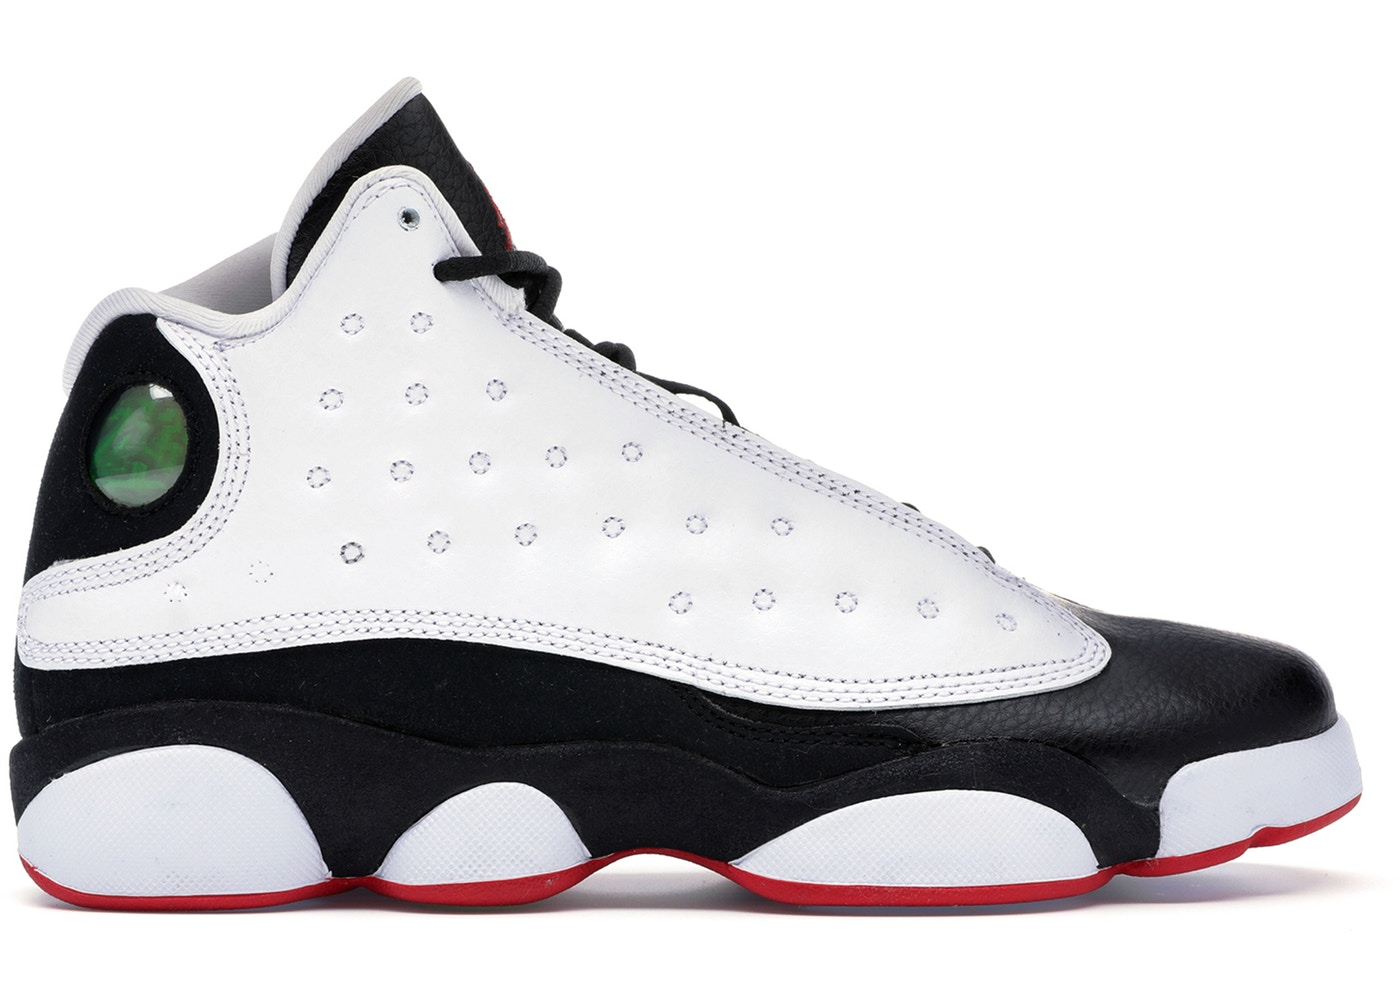 a155b40bc73 Jordan 13 Retro He Got Game 2018 (GS) - Footware Paradise